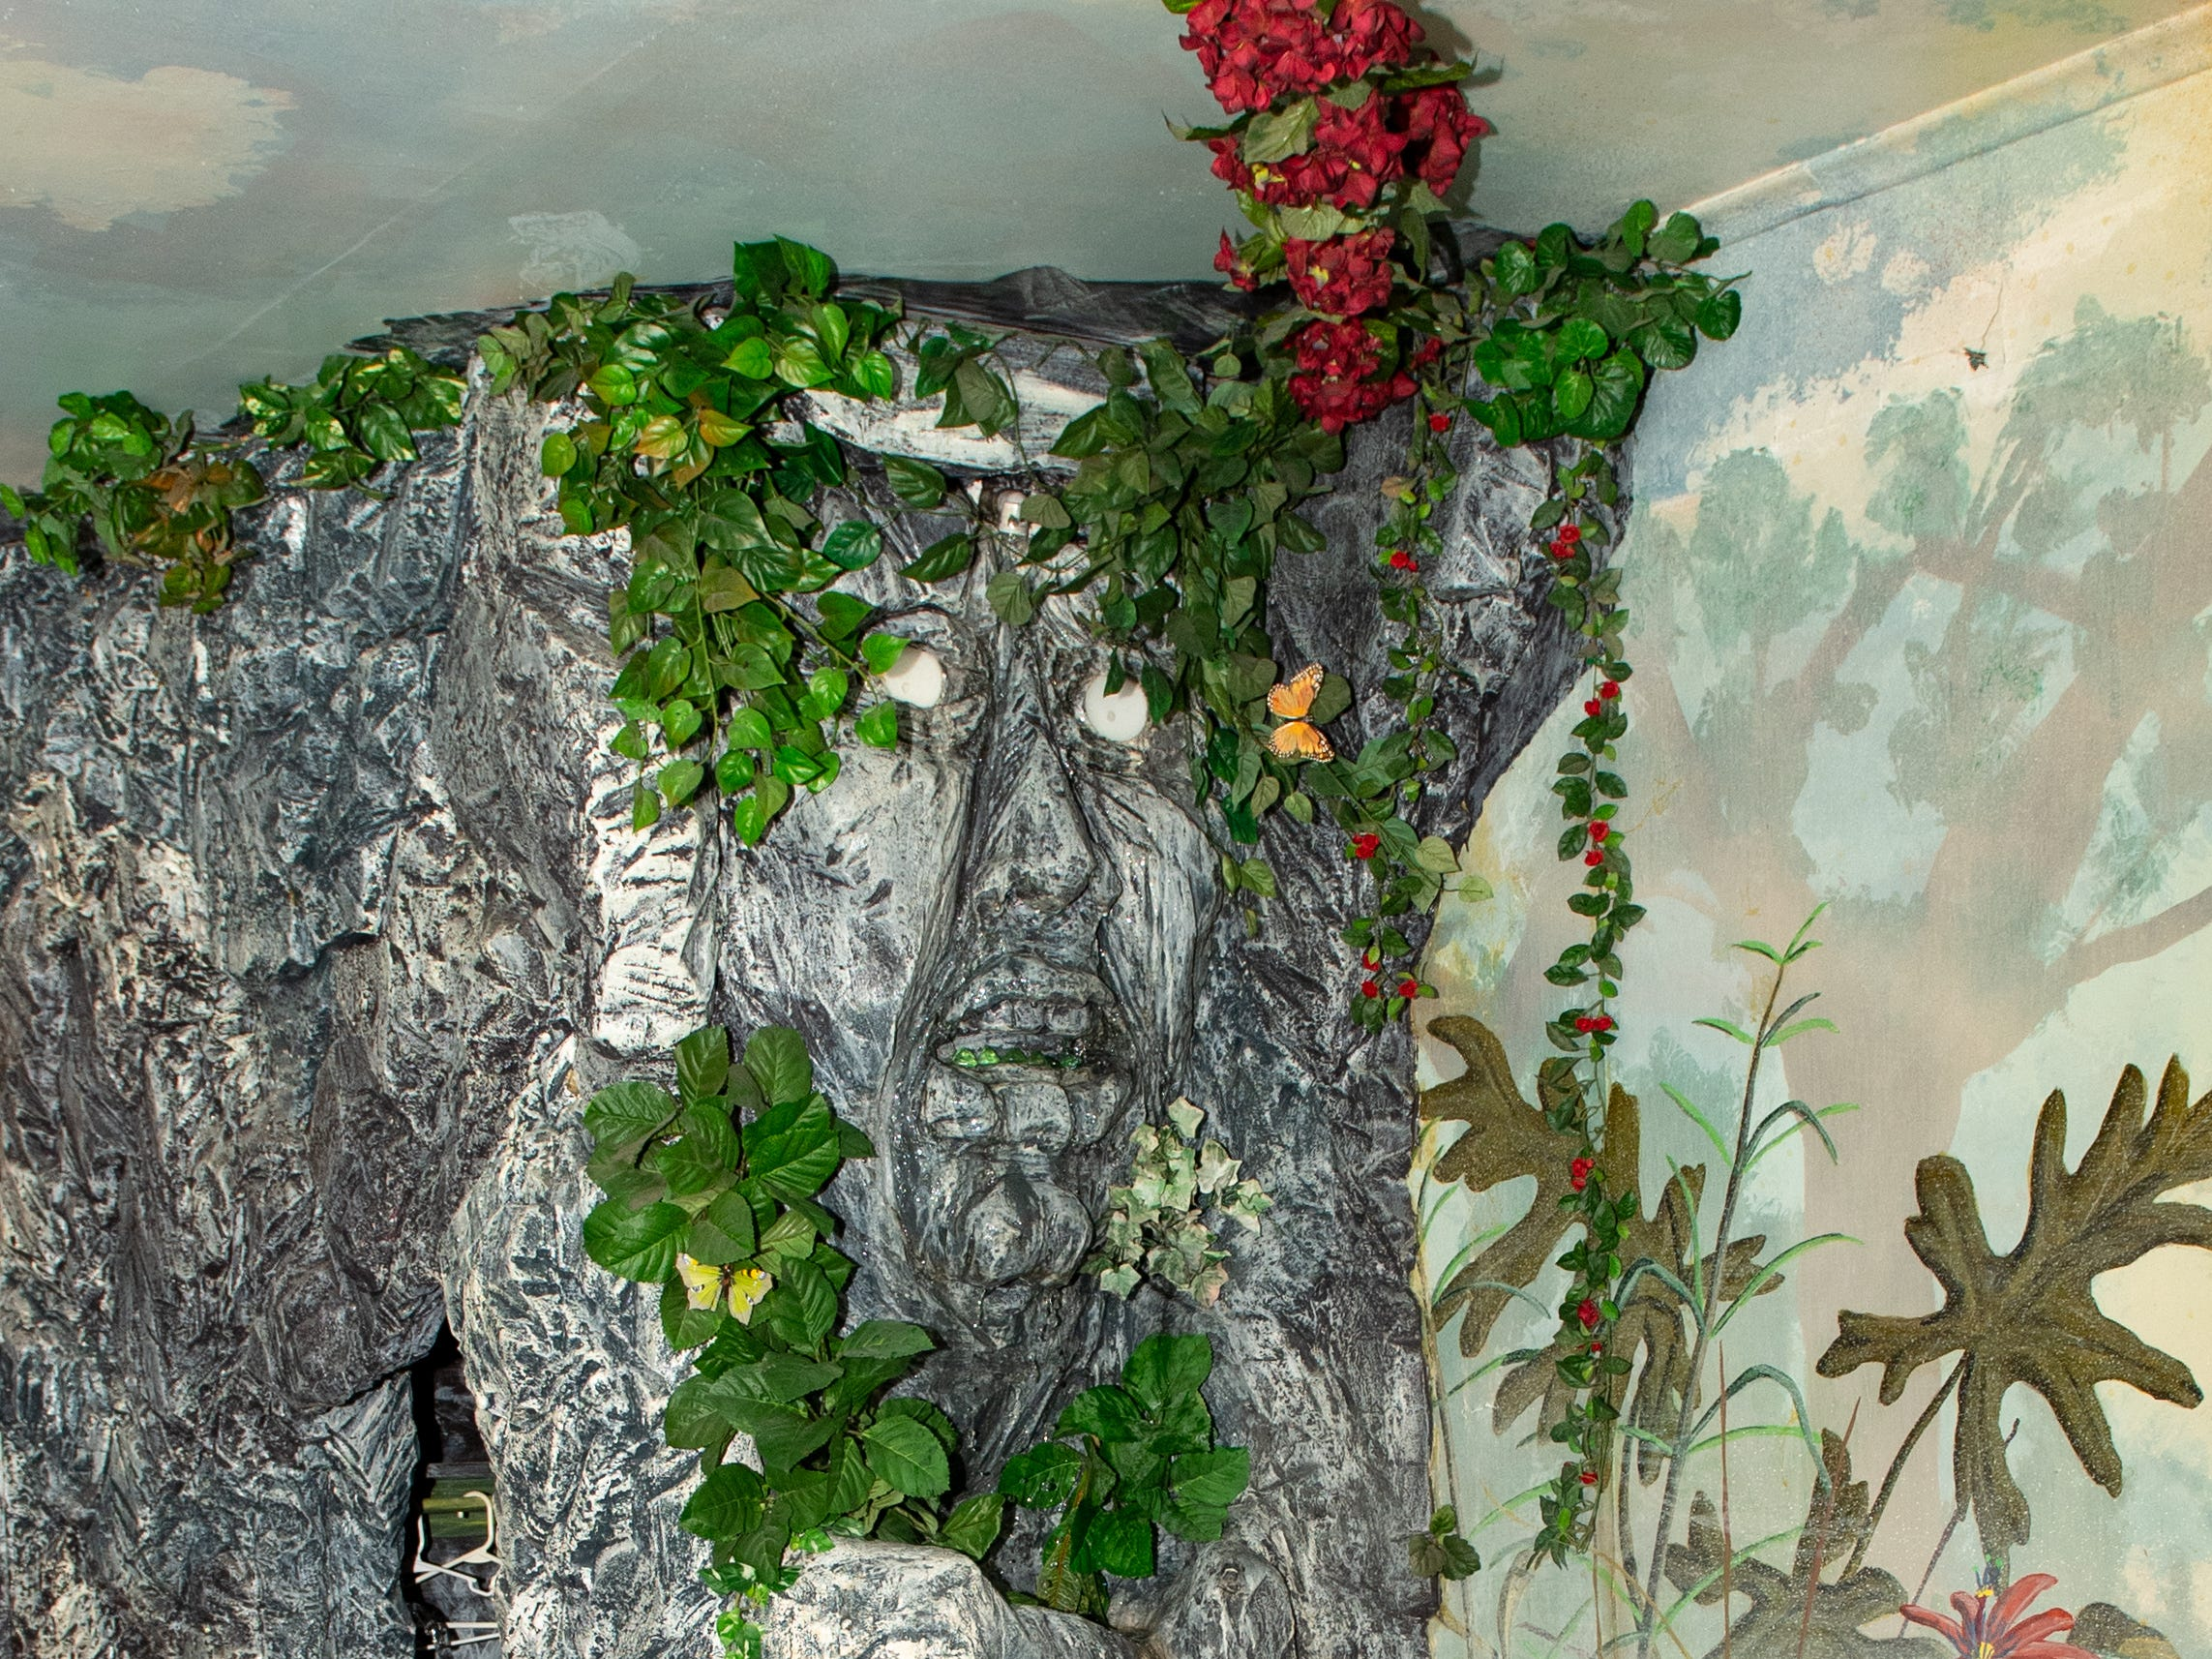 """The waterfall inside the """"Jungle"""" at Bube's Brewery. The historic hotel adjacent to the brewery has 8 specialty rooms and a grand suite available. February 22, 2019."""